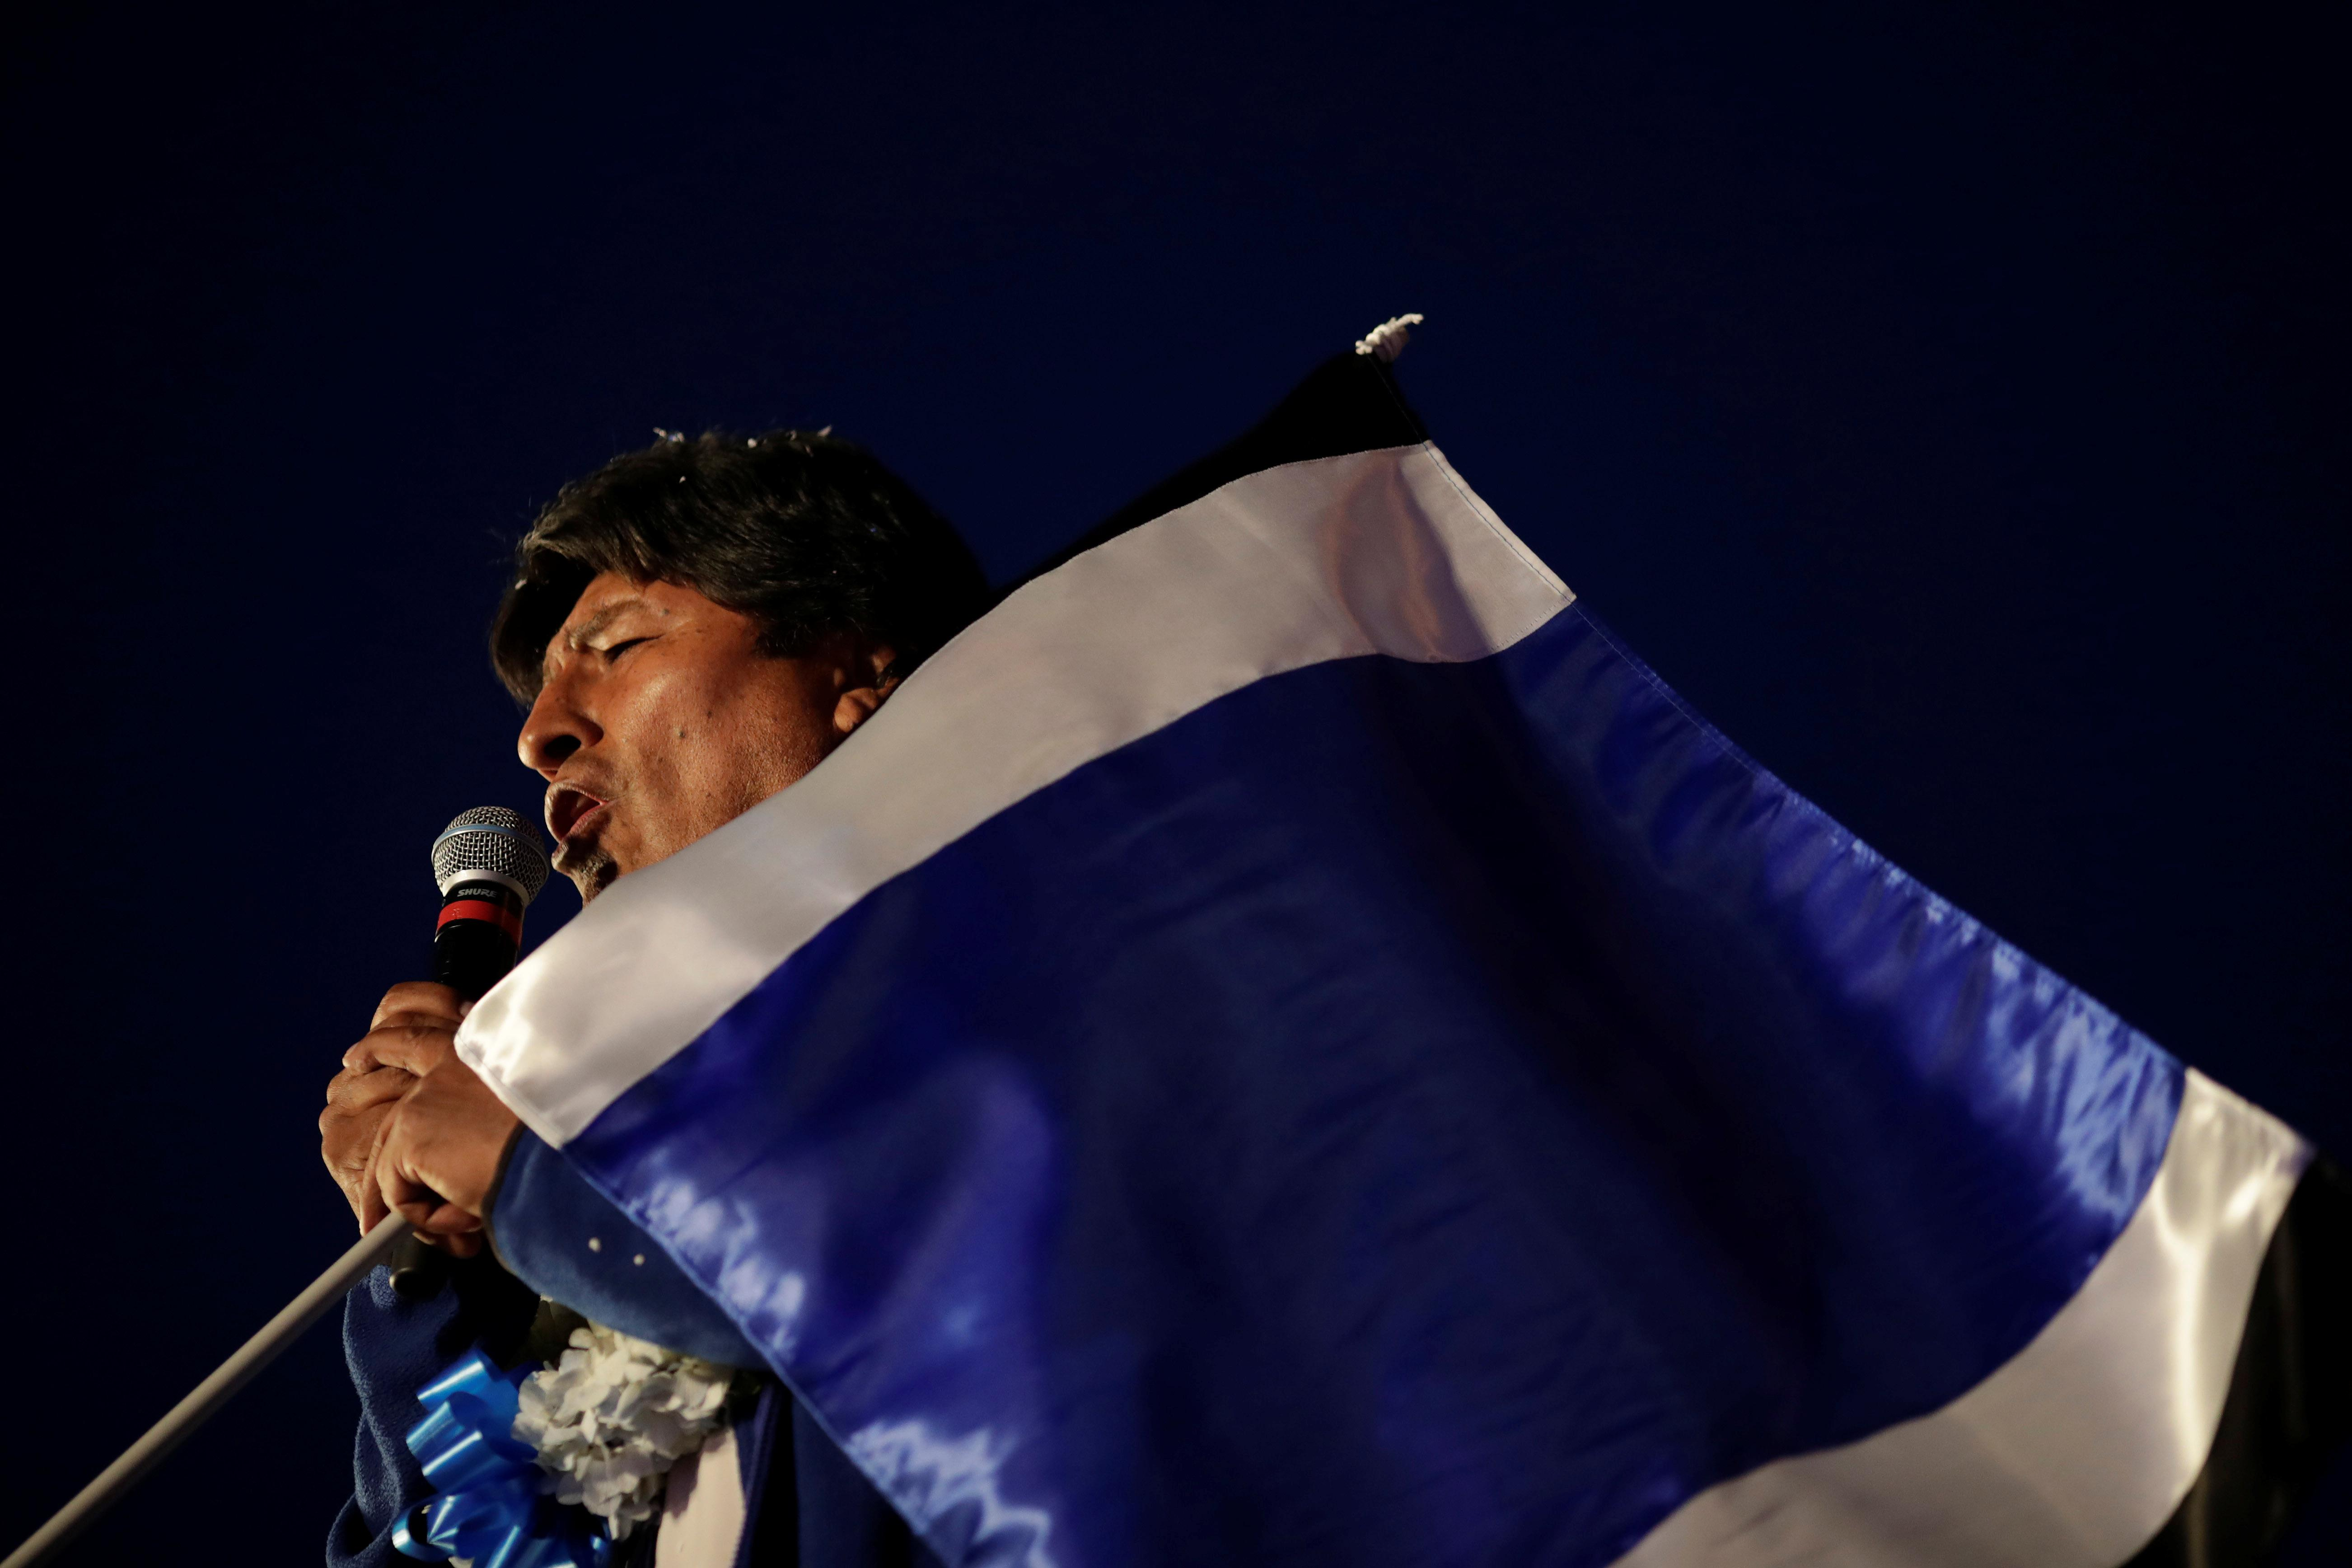 Explainer: Bolivia's 'Evo' - socialist icon or would-be dictator?